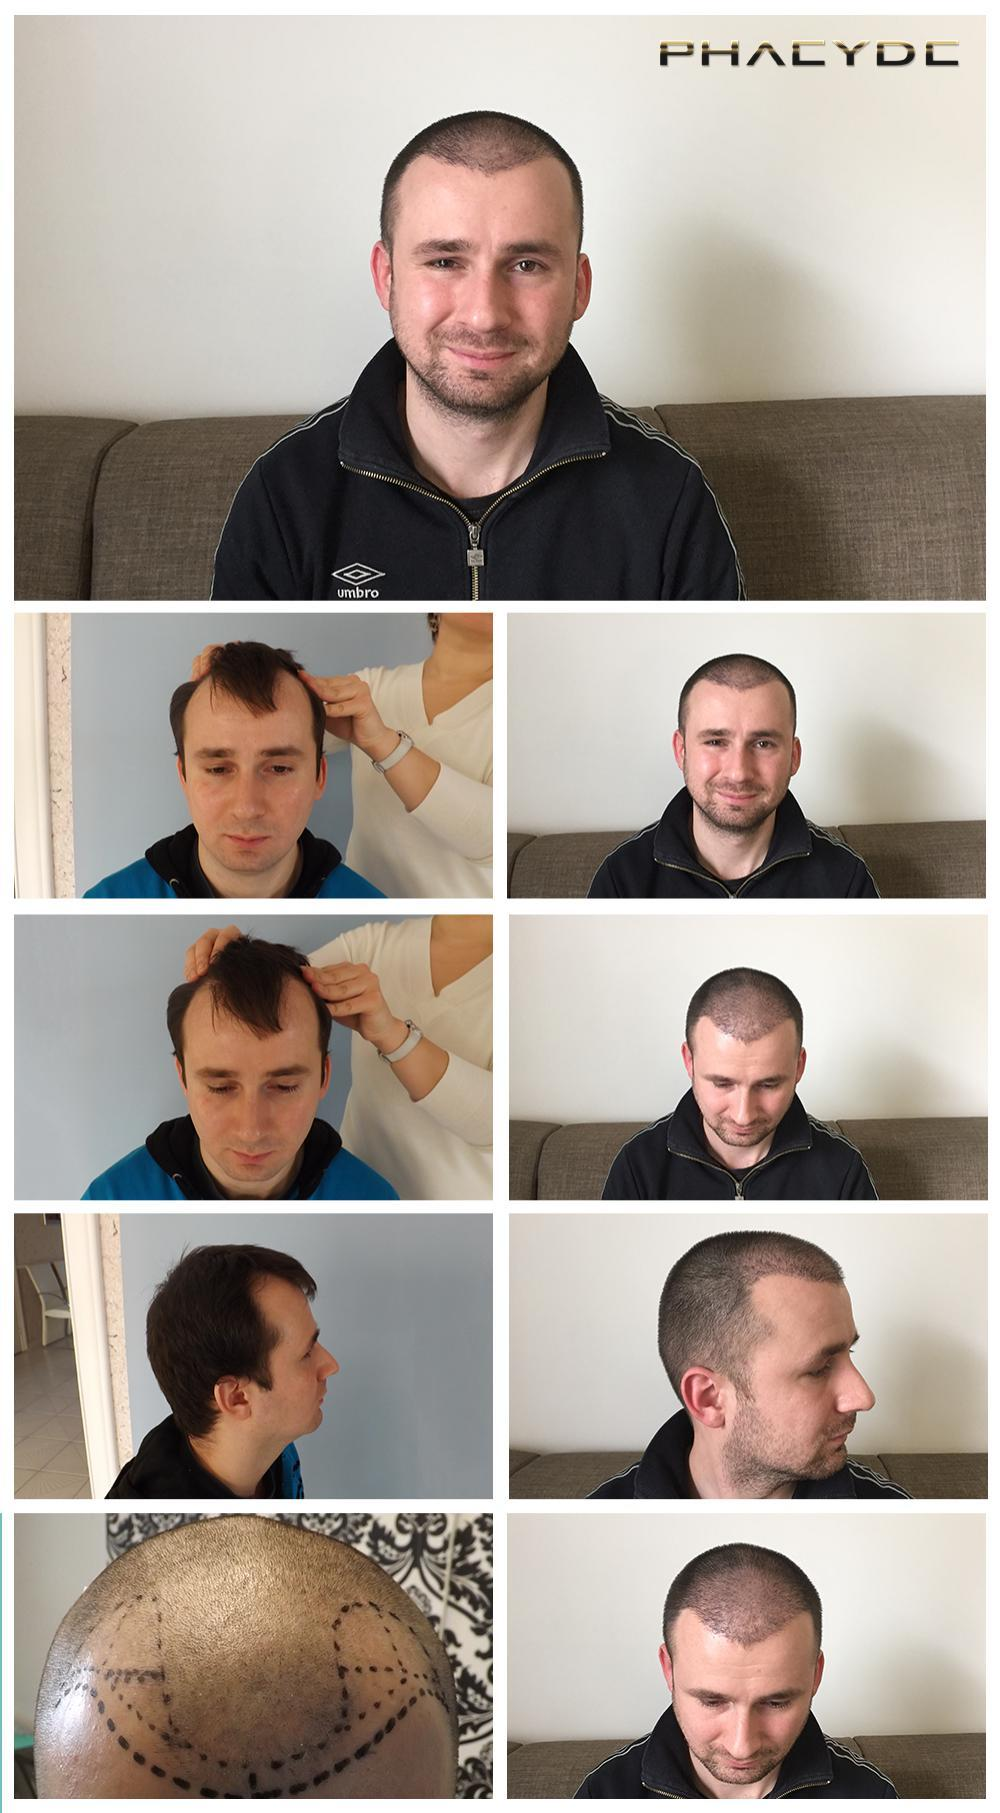 Hair transplant fue results before after photos attila forgacs - PHAEYDE Clinic